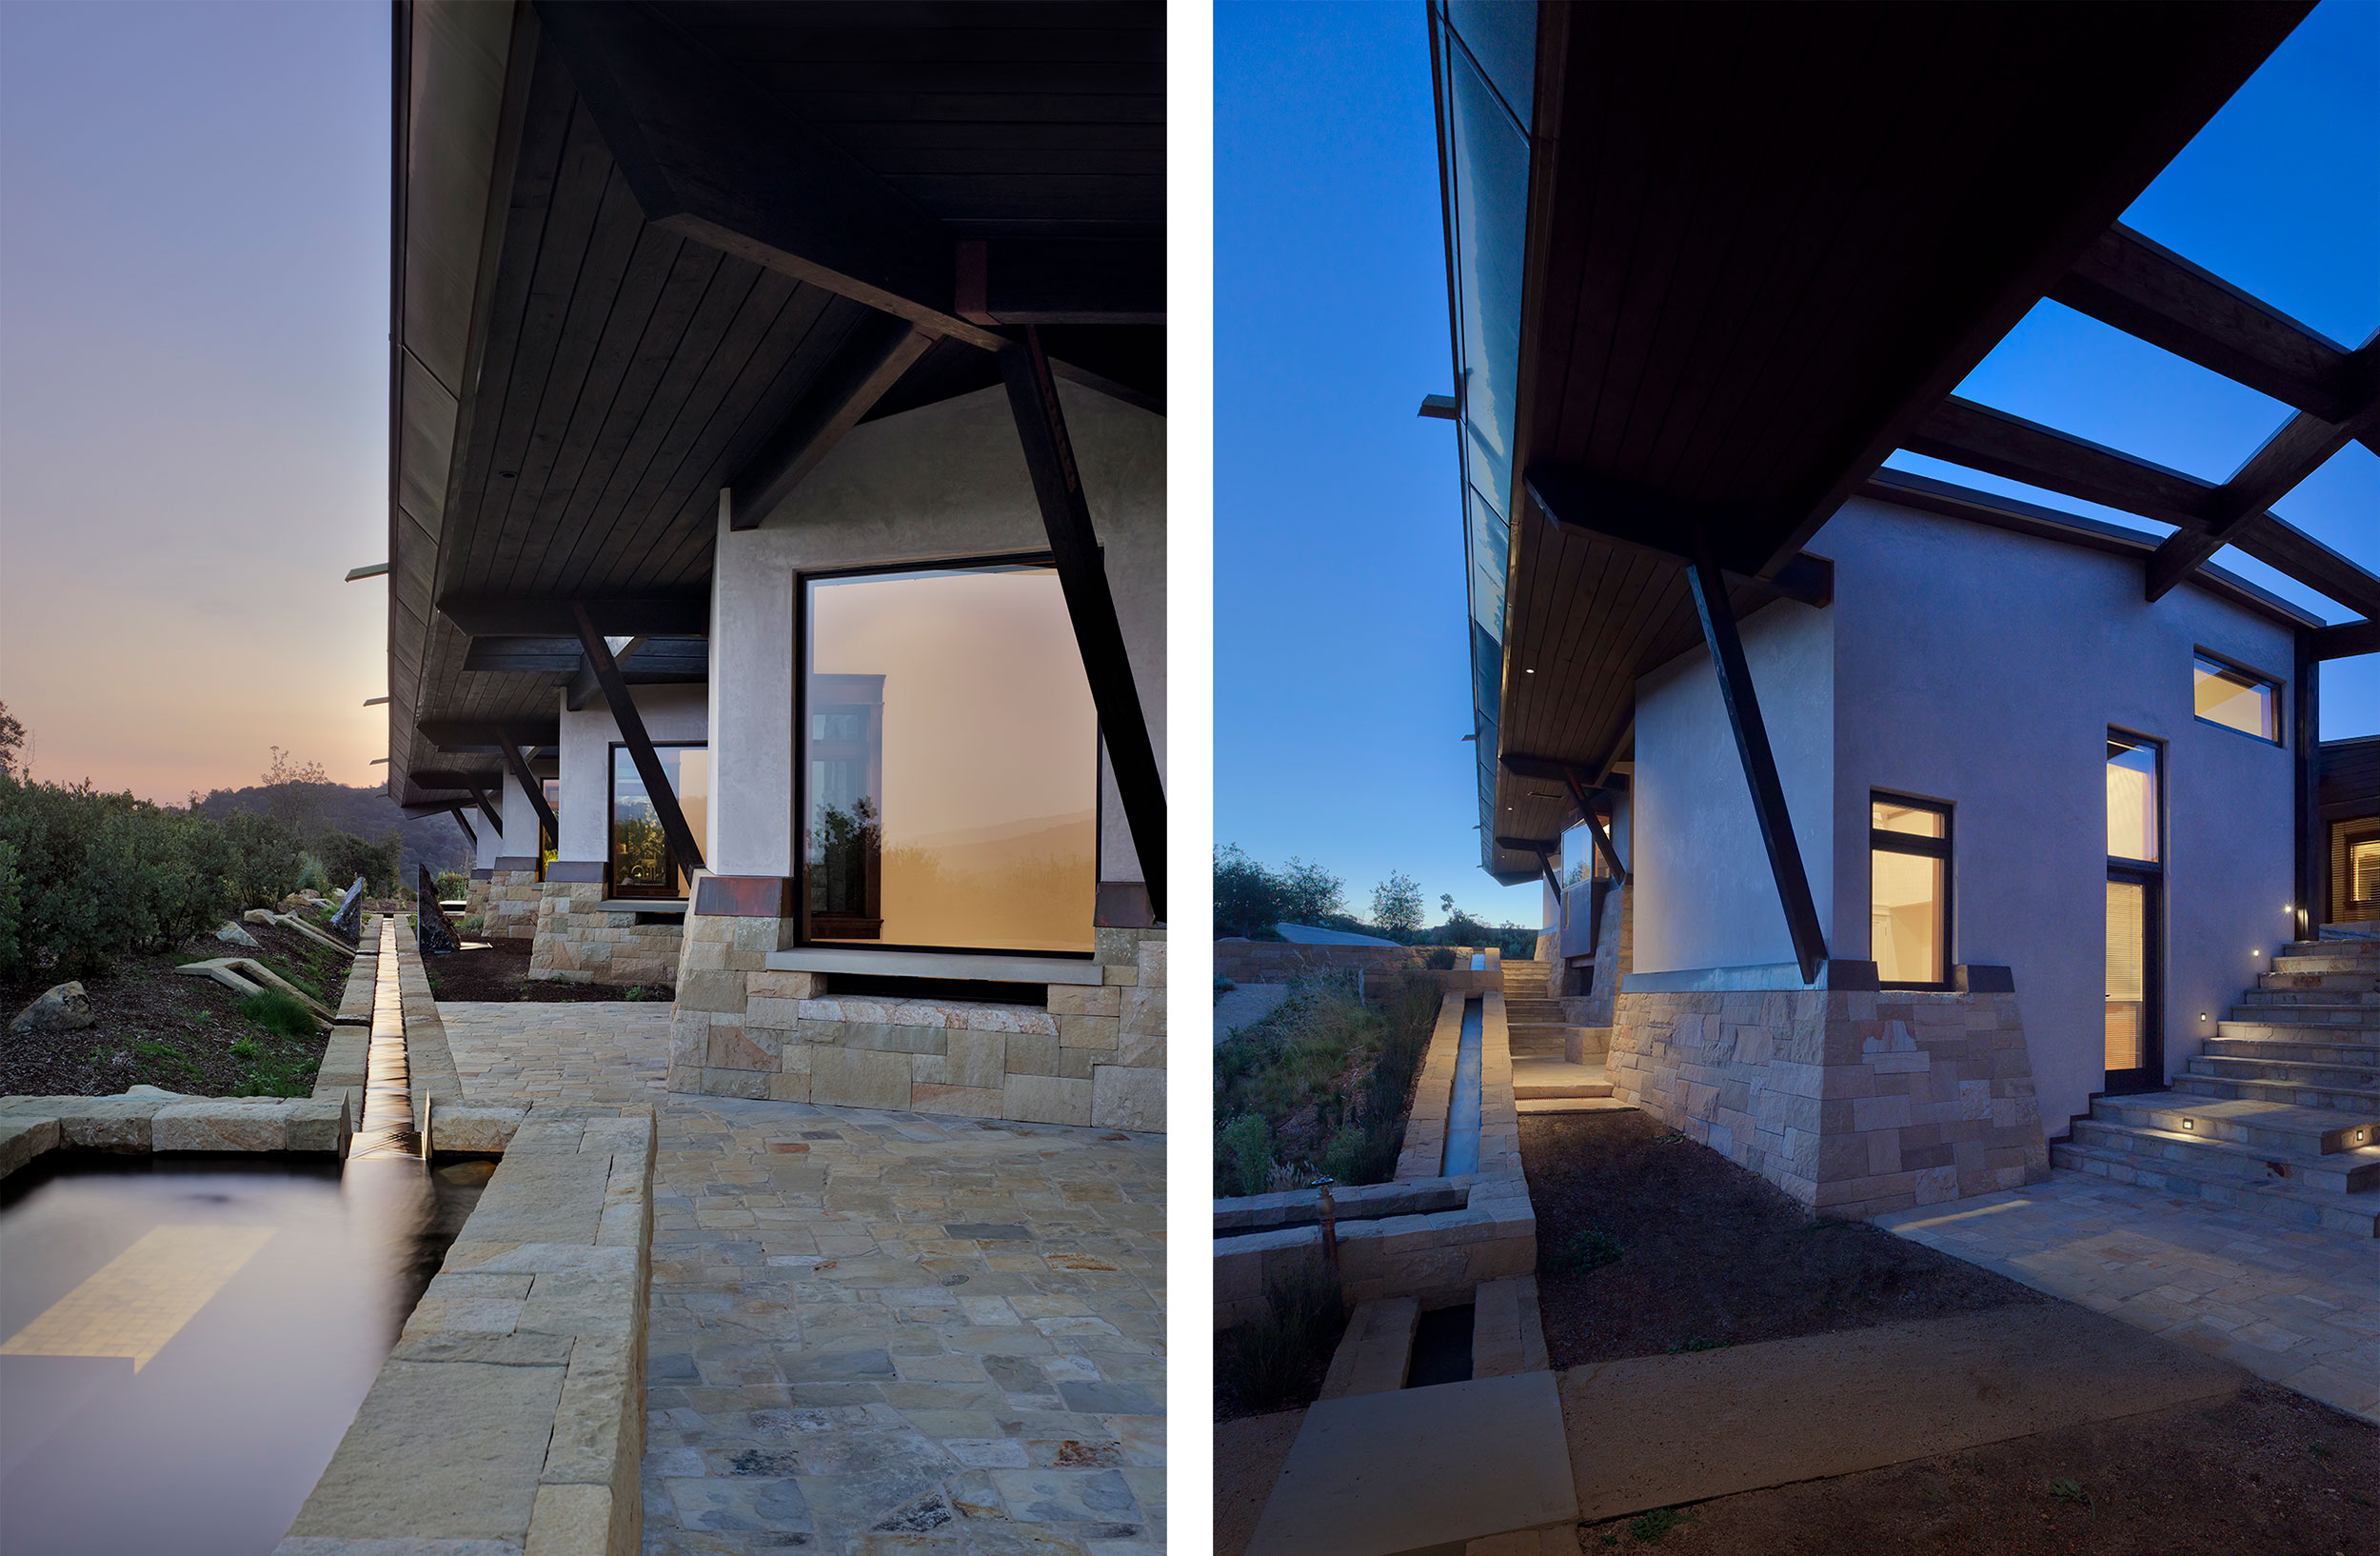 California Residence, House, Sustainability, Nature, Natural Light, Natural Materials, Stone, Roof, Shading